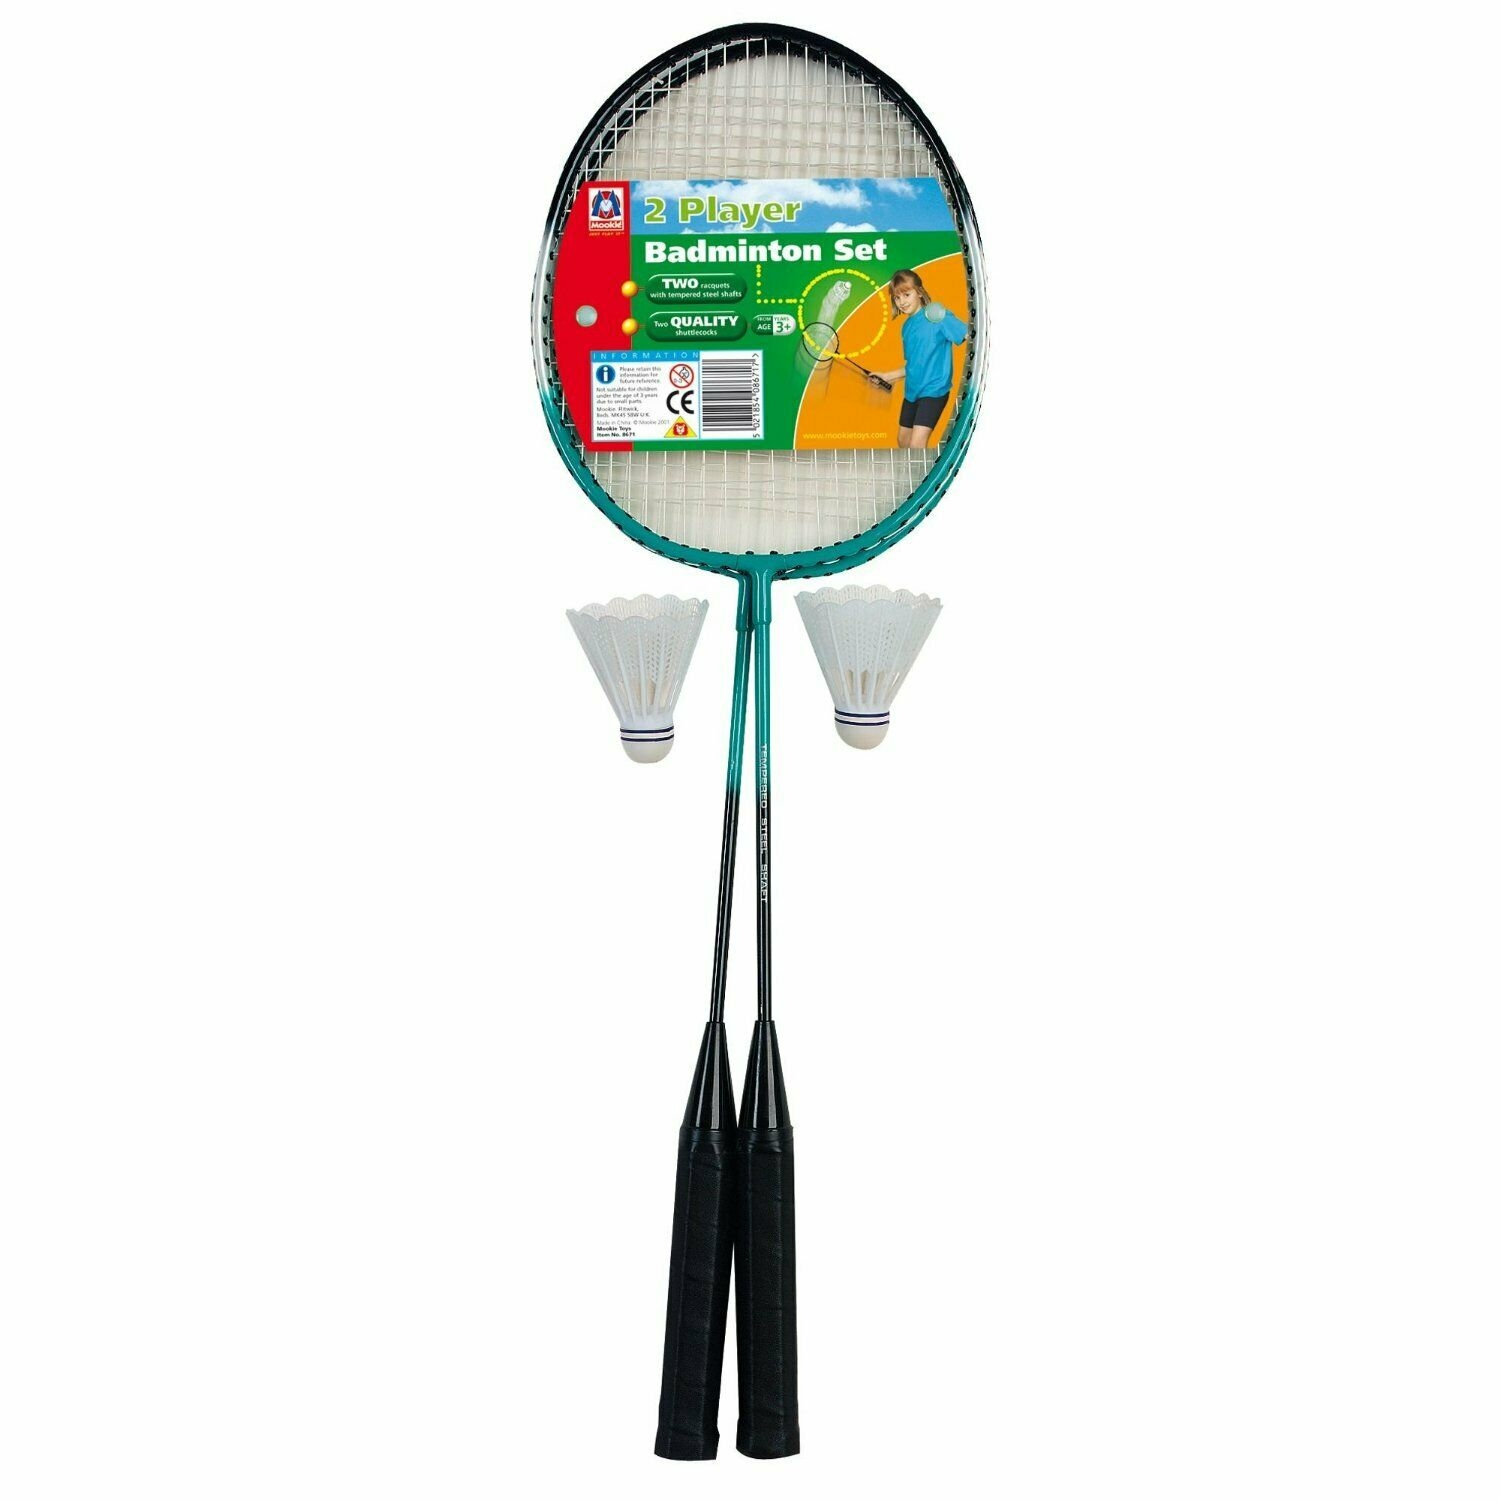 Badminton Set -2 Players